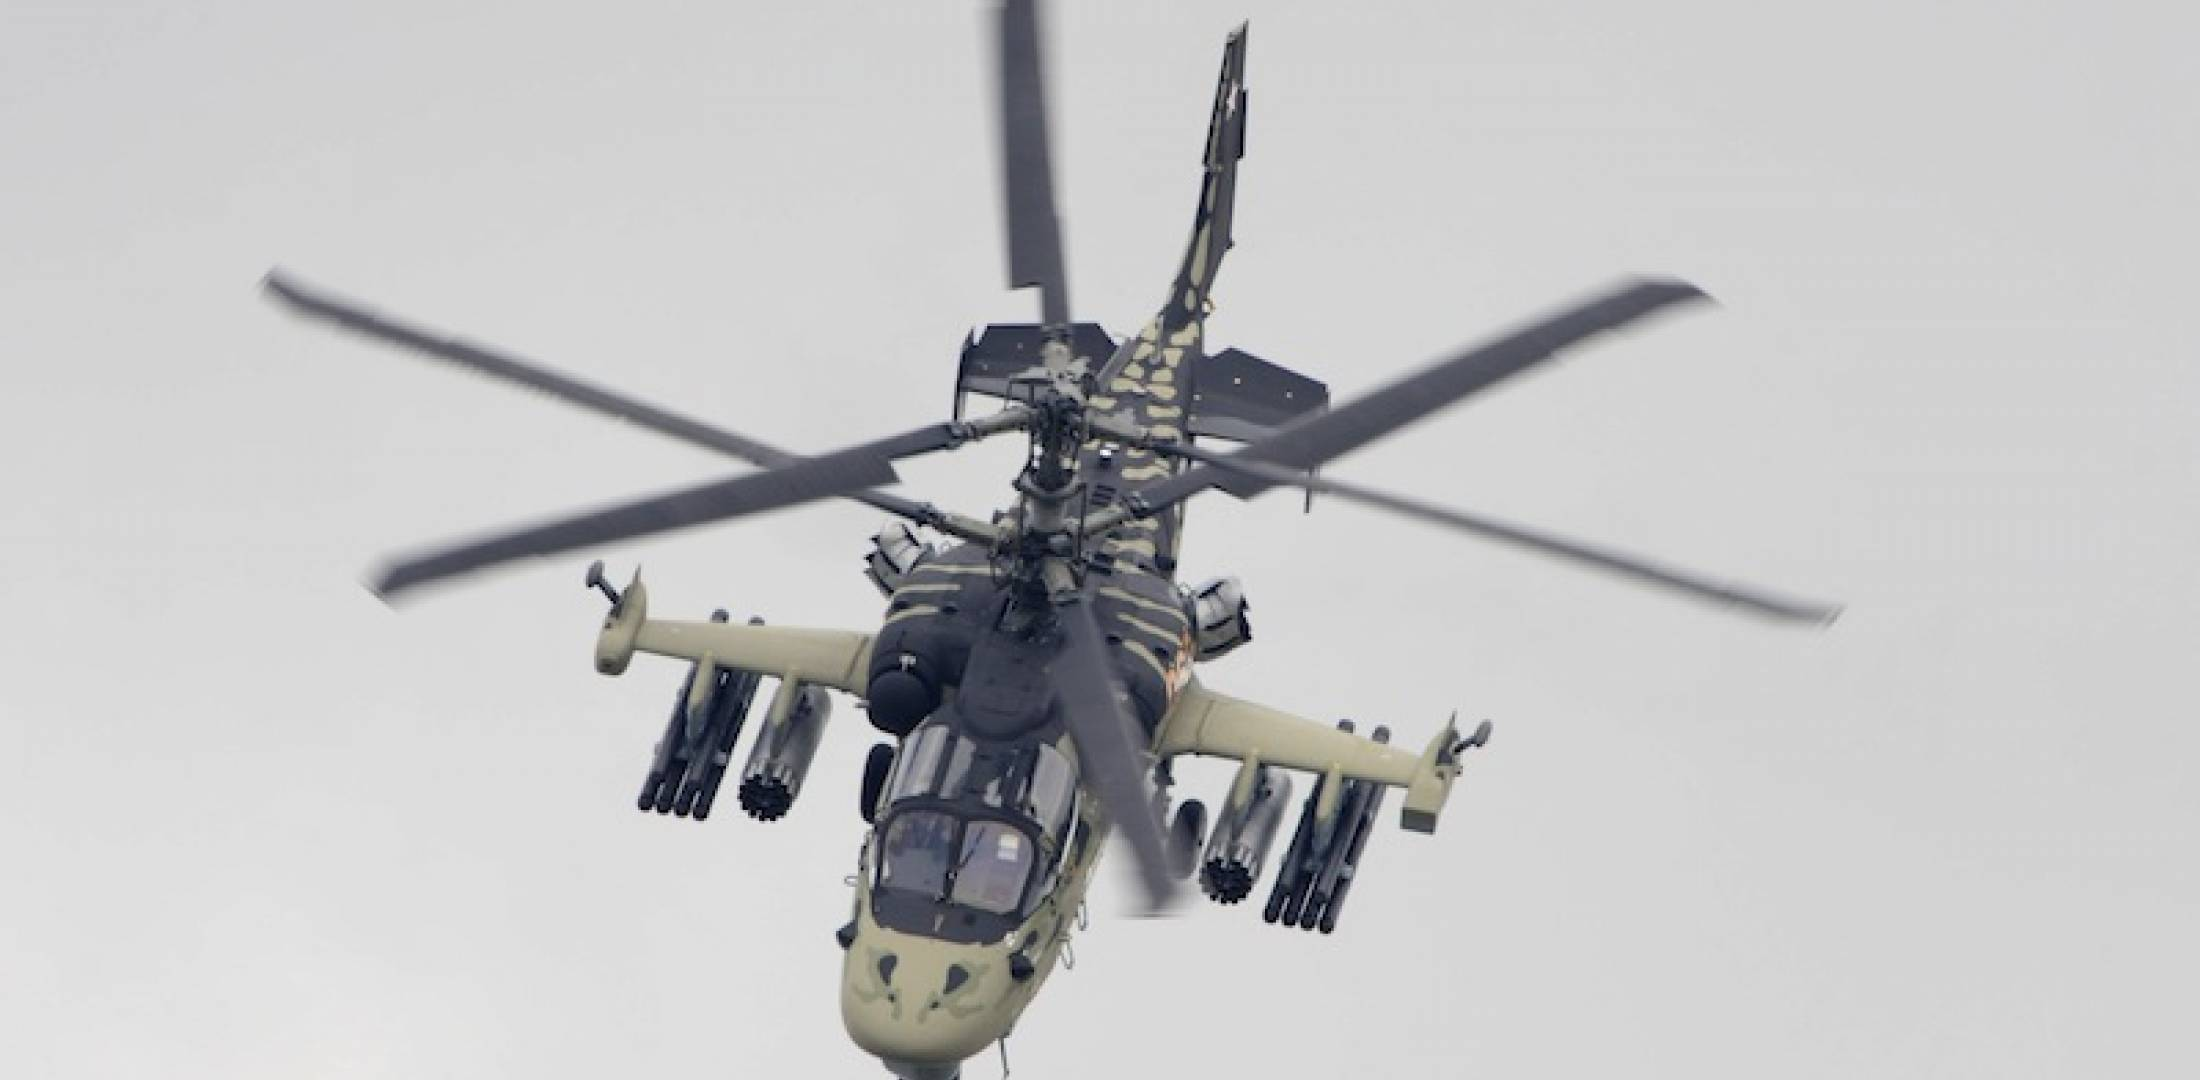 blades of helicopter with Kamov Working Naval Alligator on H 53 moreover Rolls Royce Tests  posite Fan Systems New Engine Designs further Watch further Encp besides Watch.